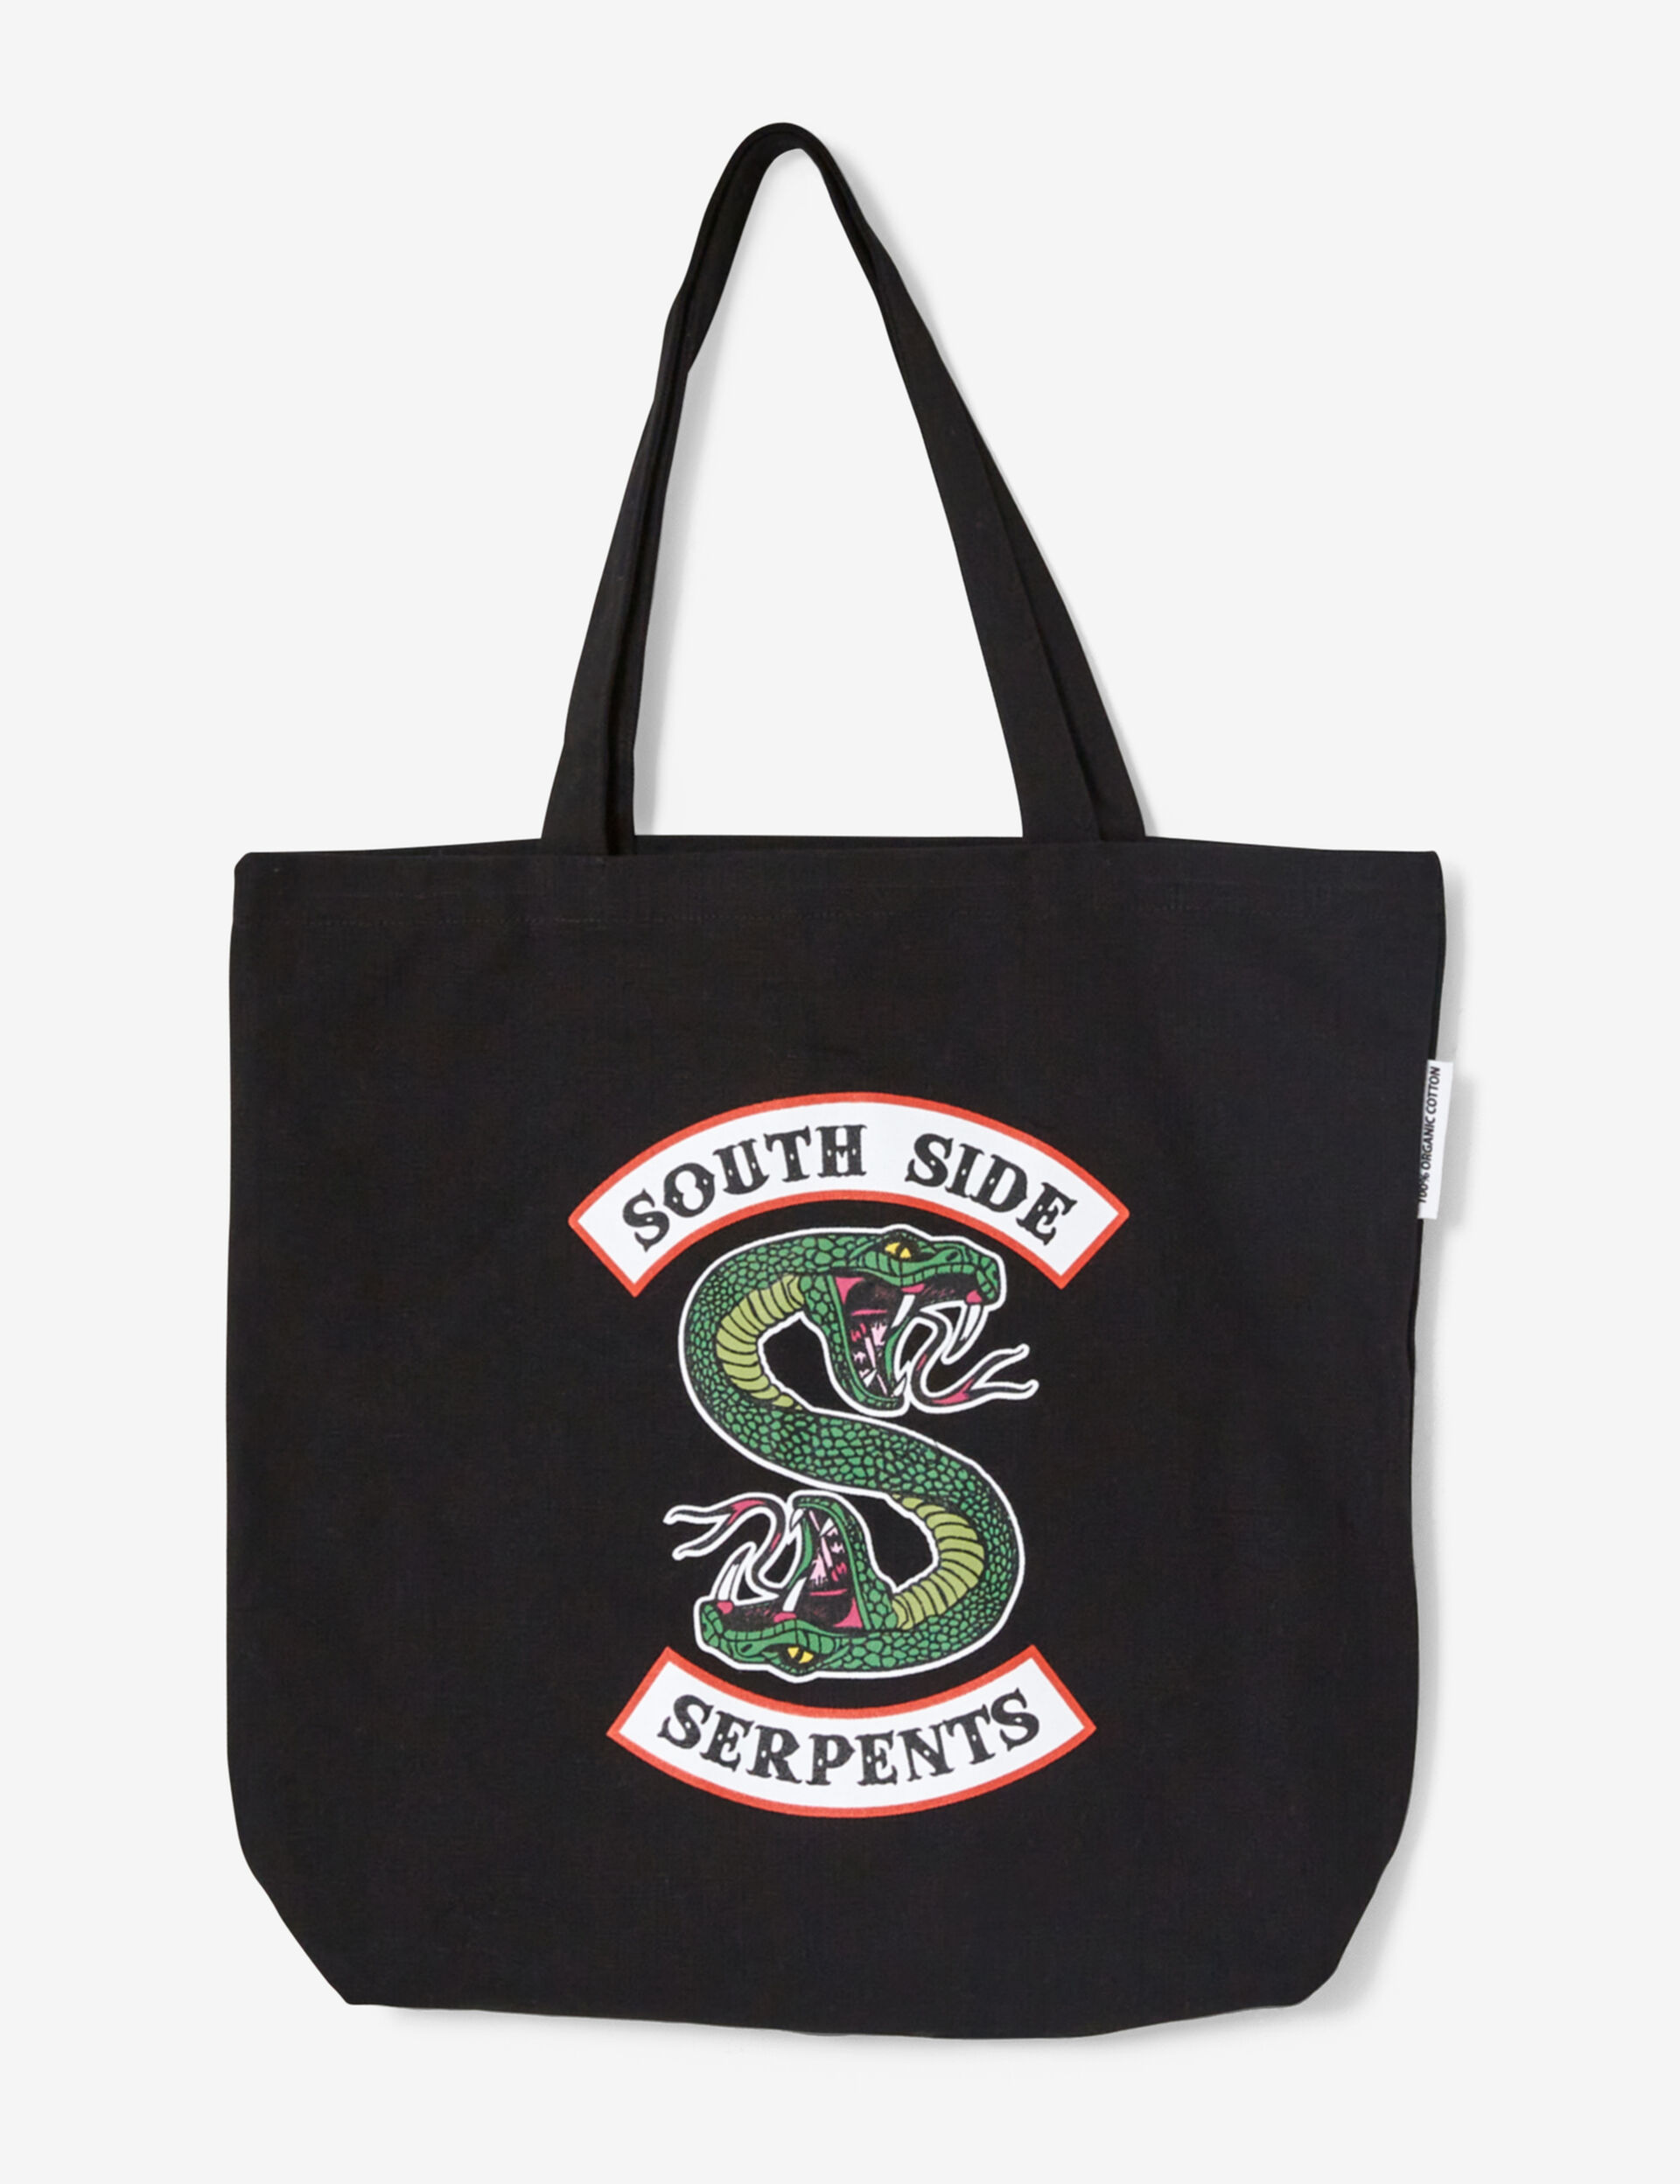 Riverdale South Side Serpents tote bag